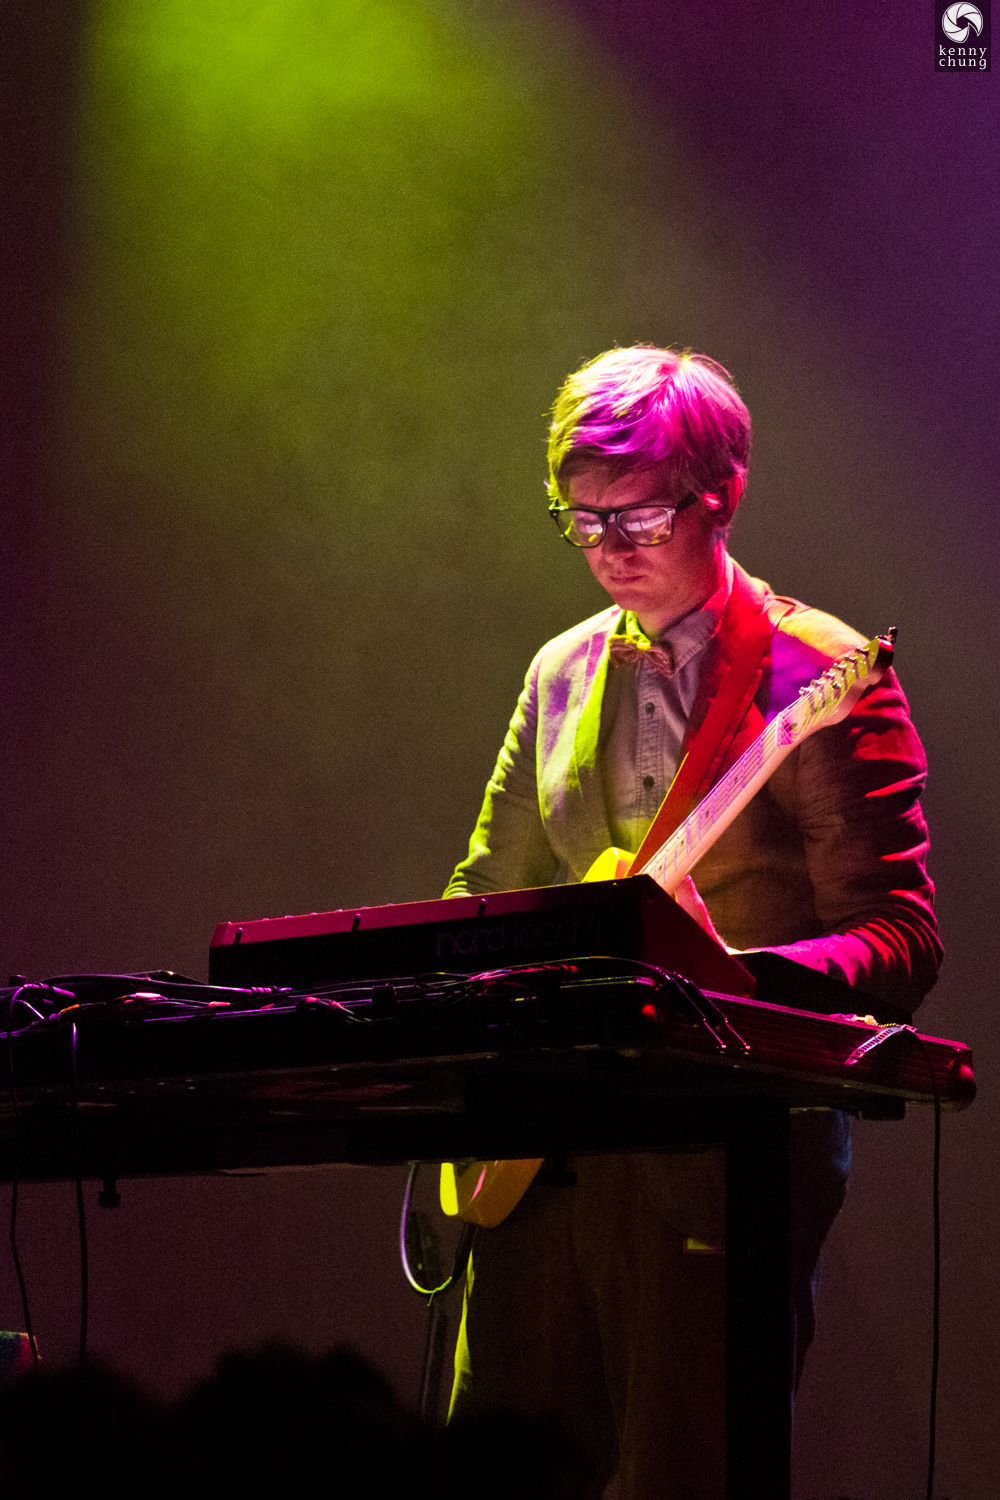 Public Service Broadcasting's J. Willgoose, Esq playing a Telecaster at Bowery Ballroom